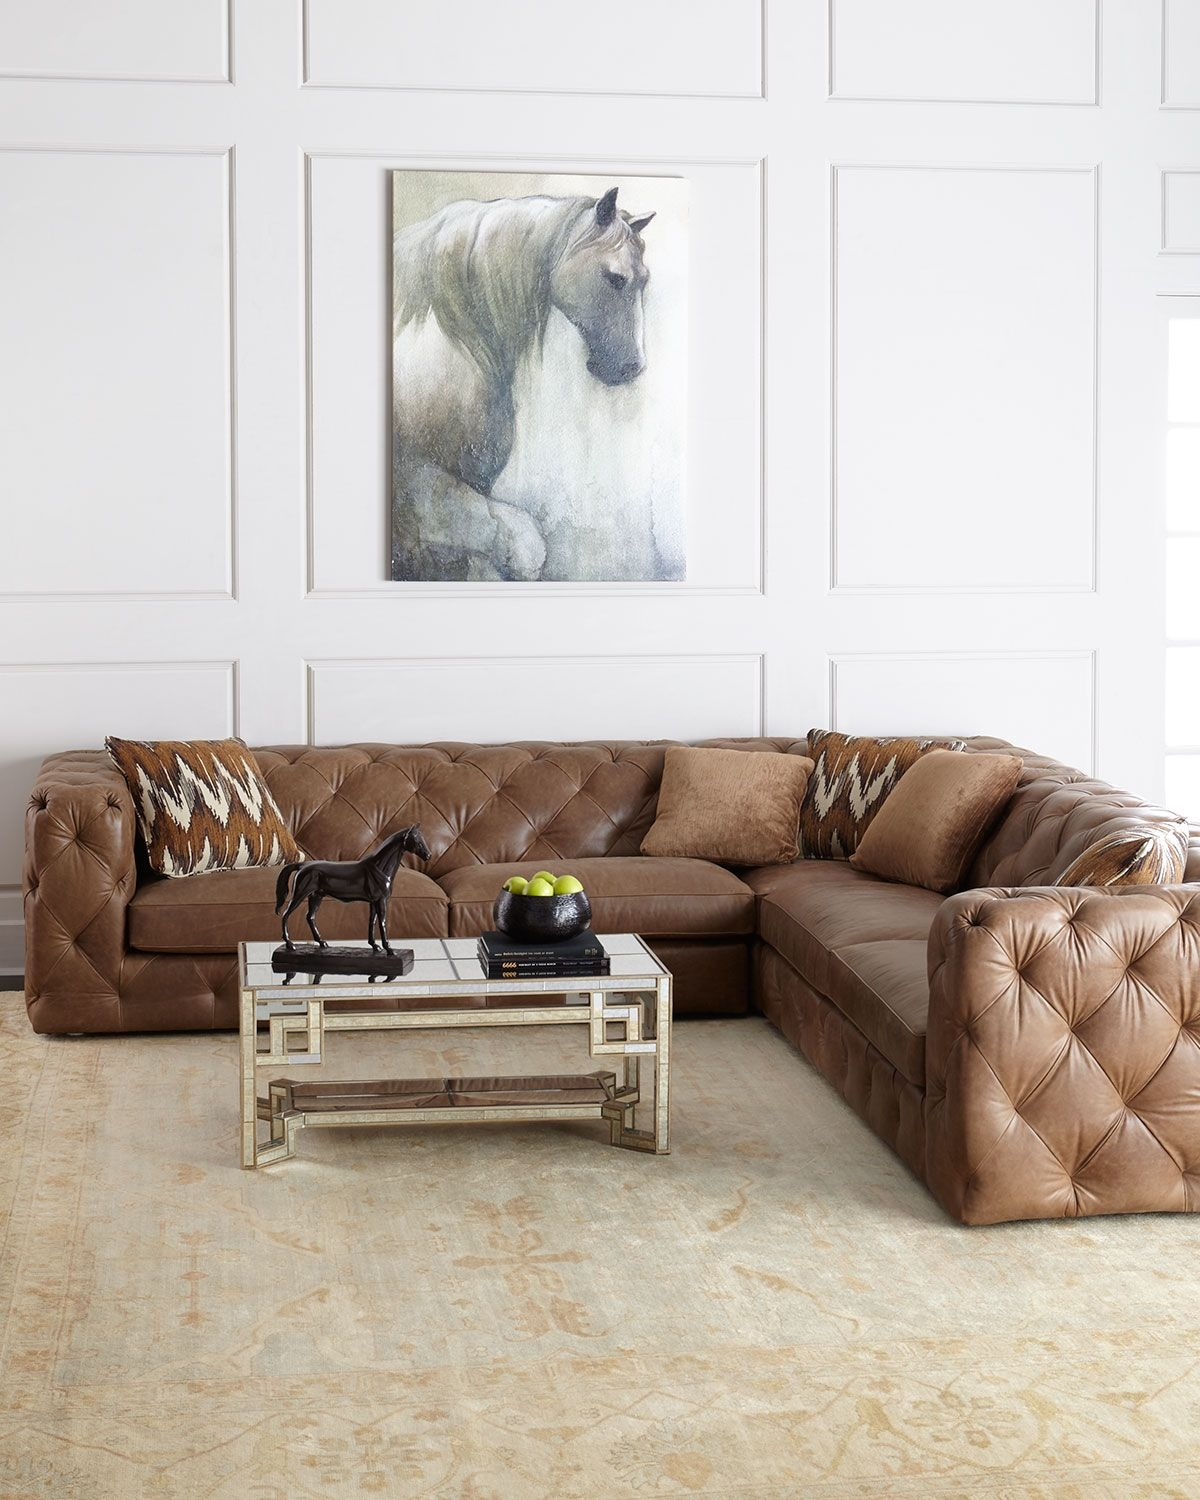 53f100e d17b4ff3ee697db14 on Traditional Style Leather Sofas id=1005433